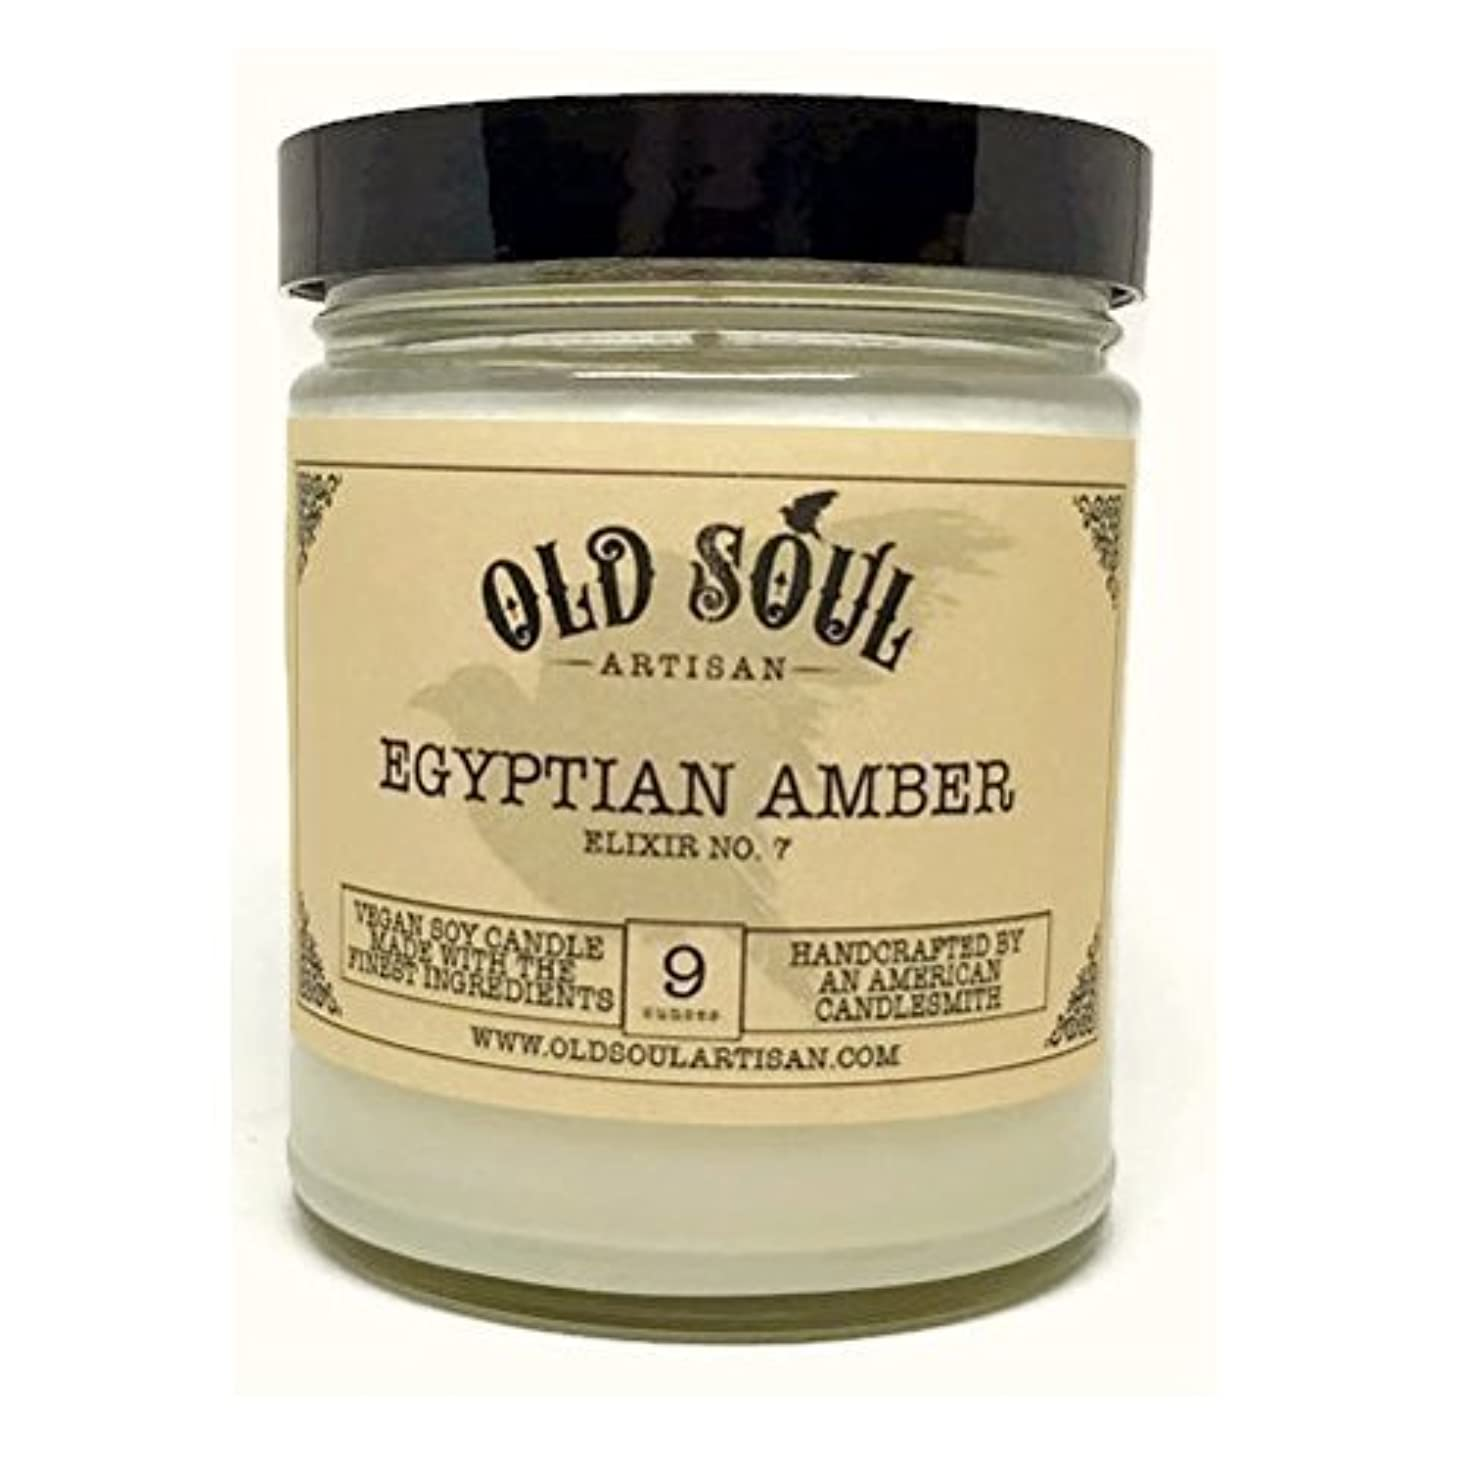 下るマントル古風なEgyptian Amber Scented Vegan Jar Soy Candle - 9 oz [並行輸入品]